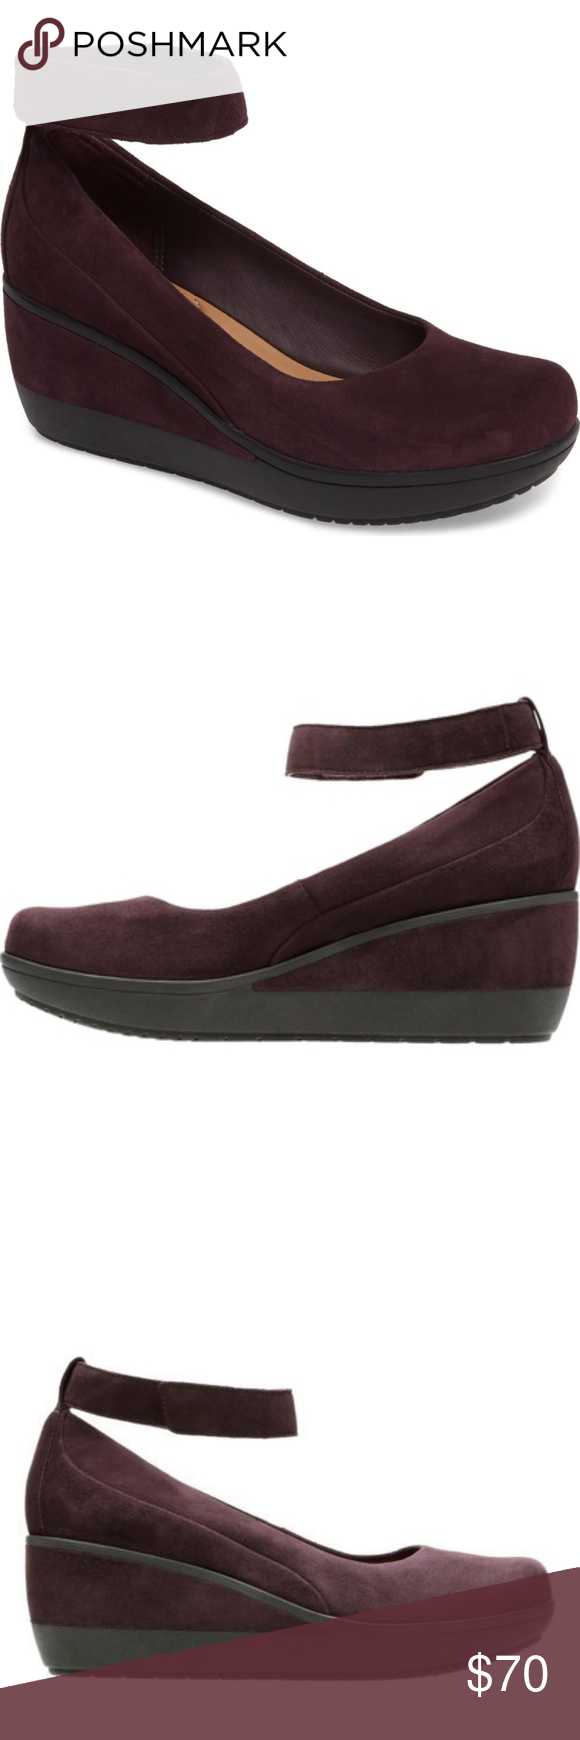 583bb36c2a1 Clarks Wynnmere Fox Close Toe Wedges Aubergine Everyone loves the Wynnmere  Fox Wedges from Clarks for